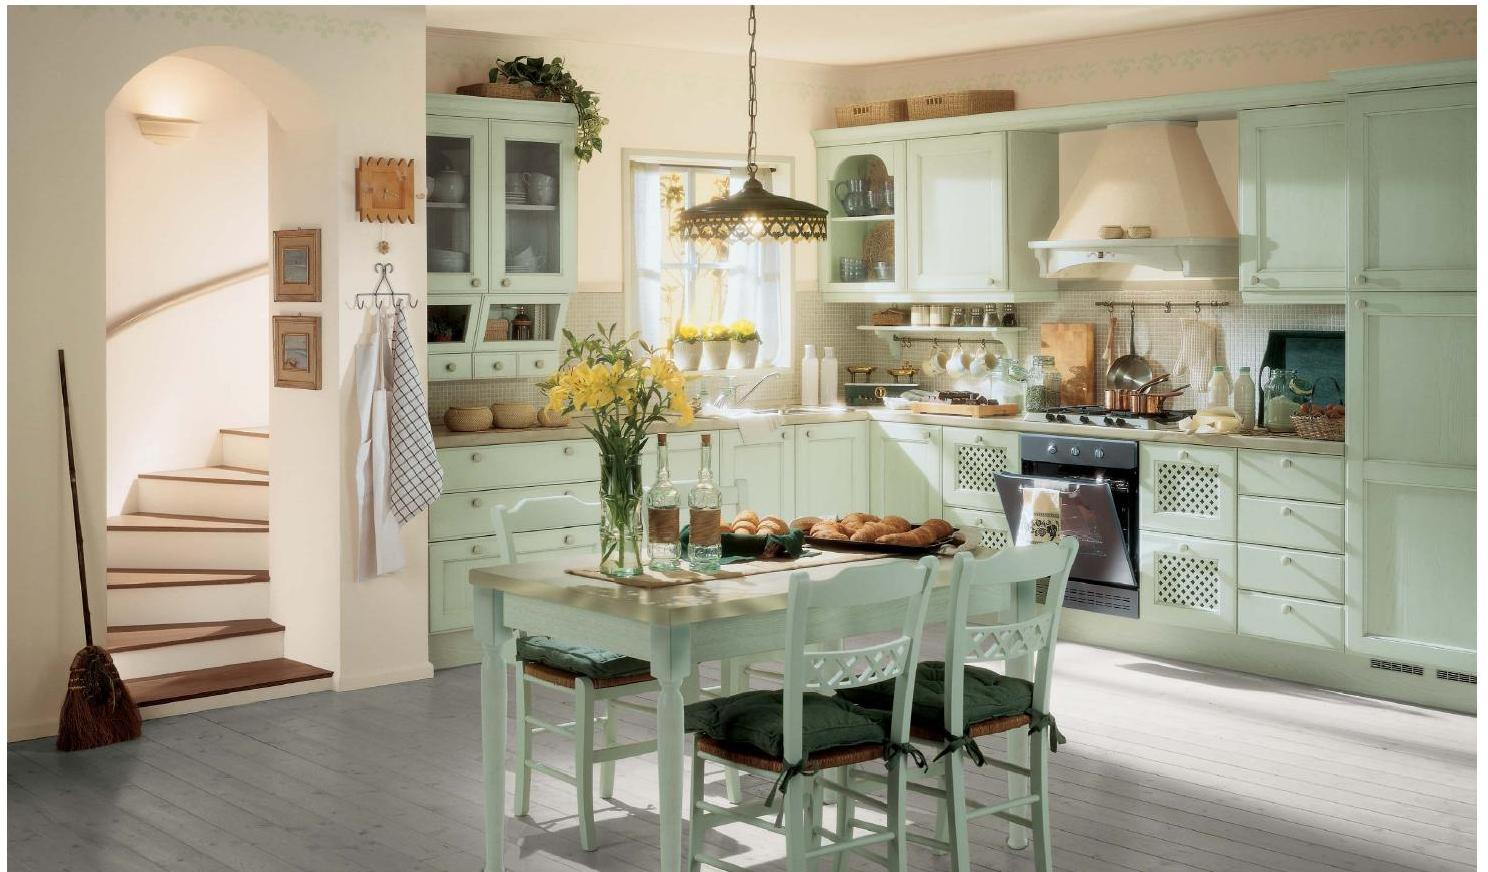 Provence Style Kitchen Interior Design for Cozy Life with Taste of Classics. Turquoise colored rustic kitchen